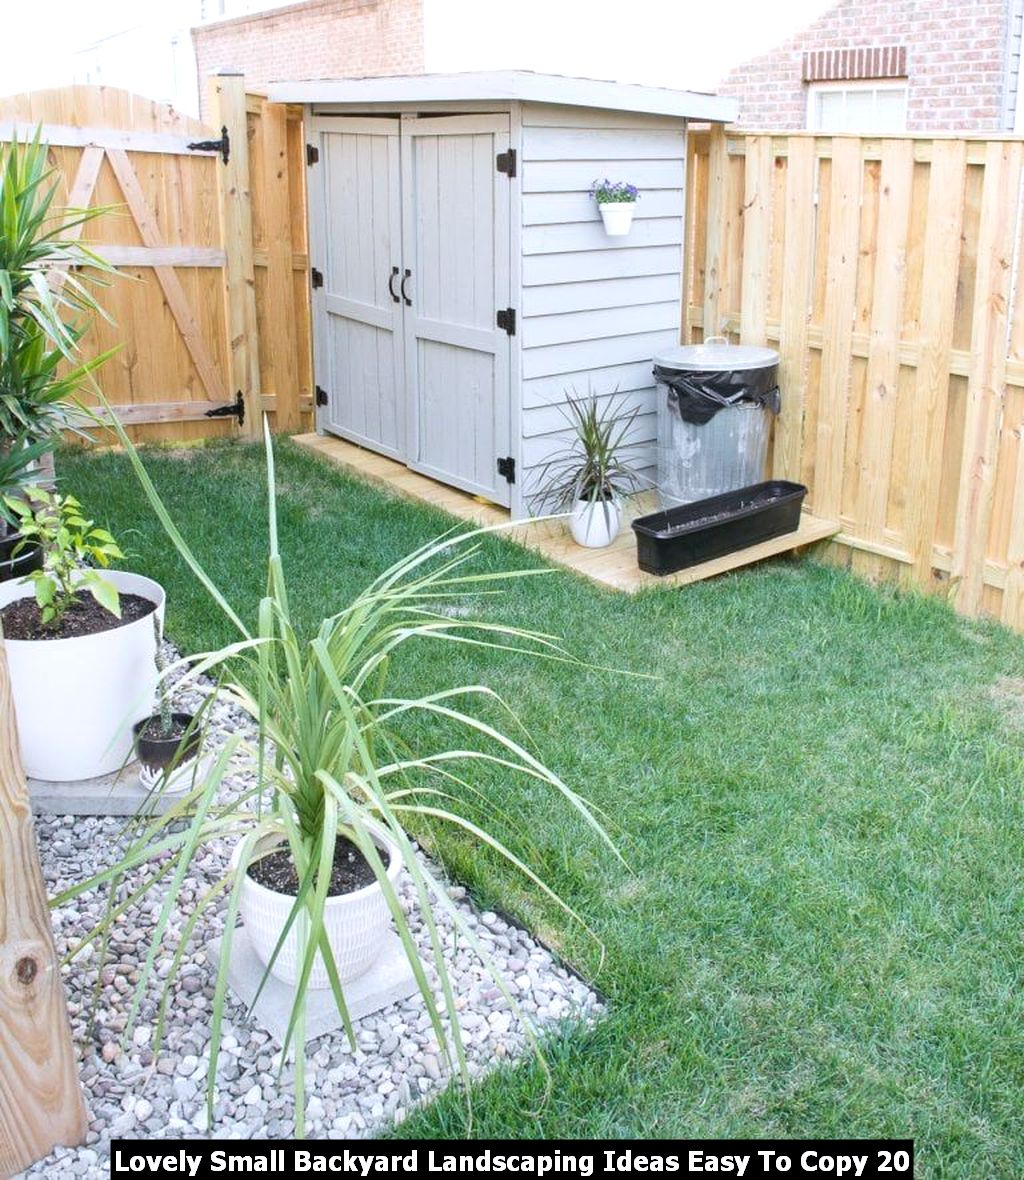 Lovely Small Backyard Landscaping Ideas Easy To Copy 20